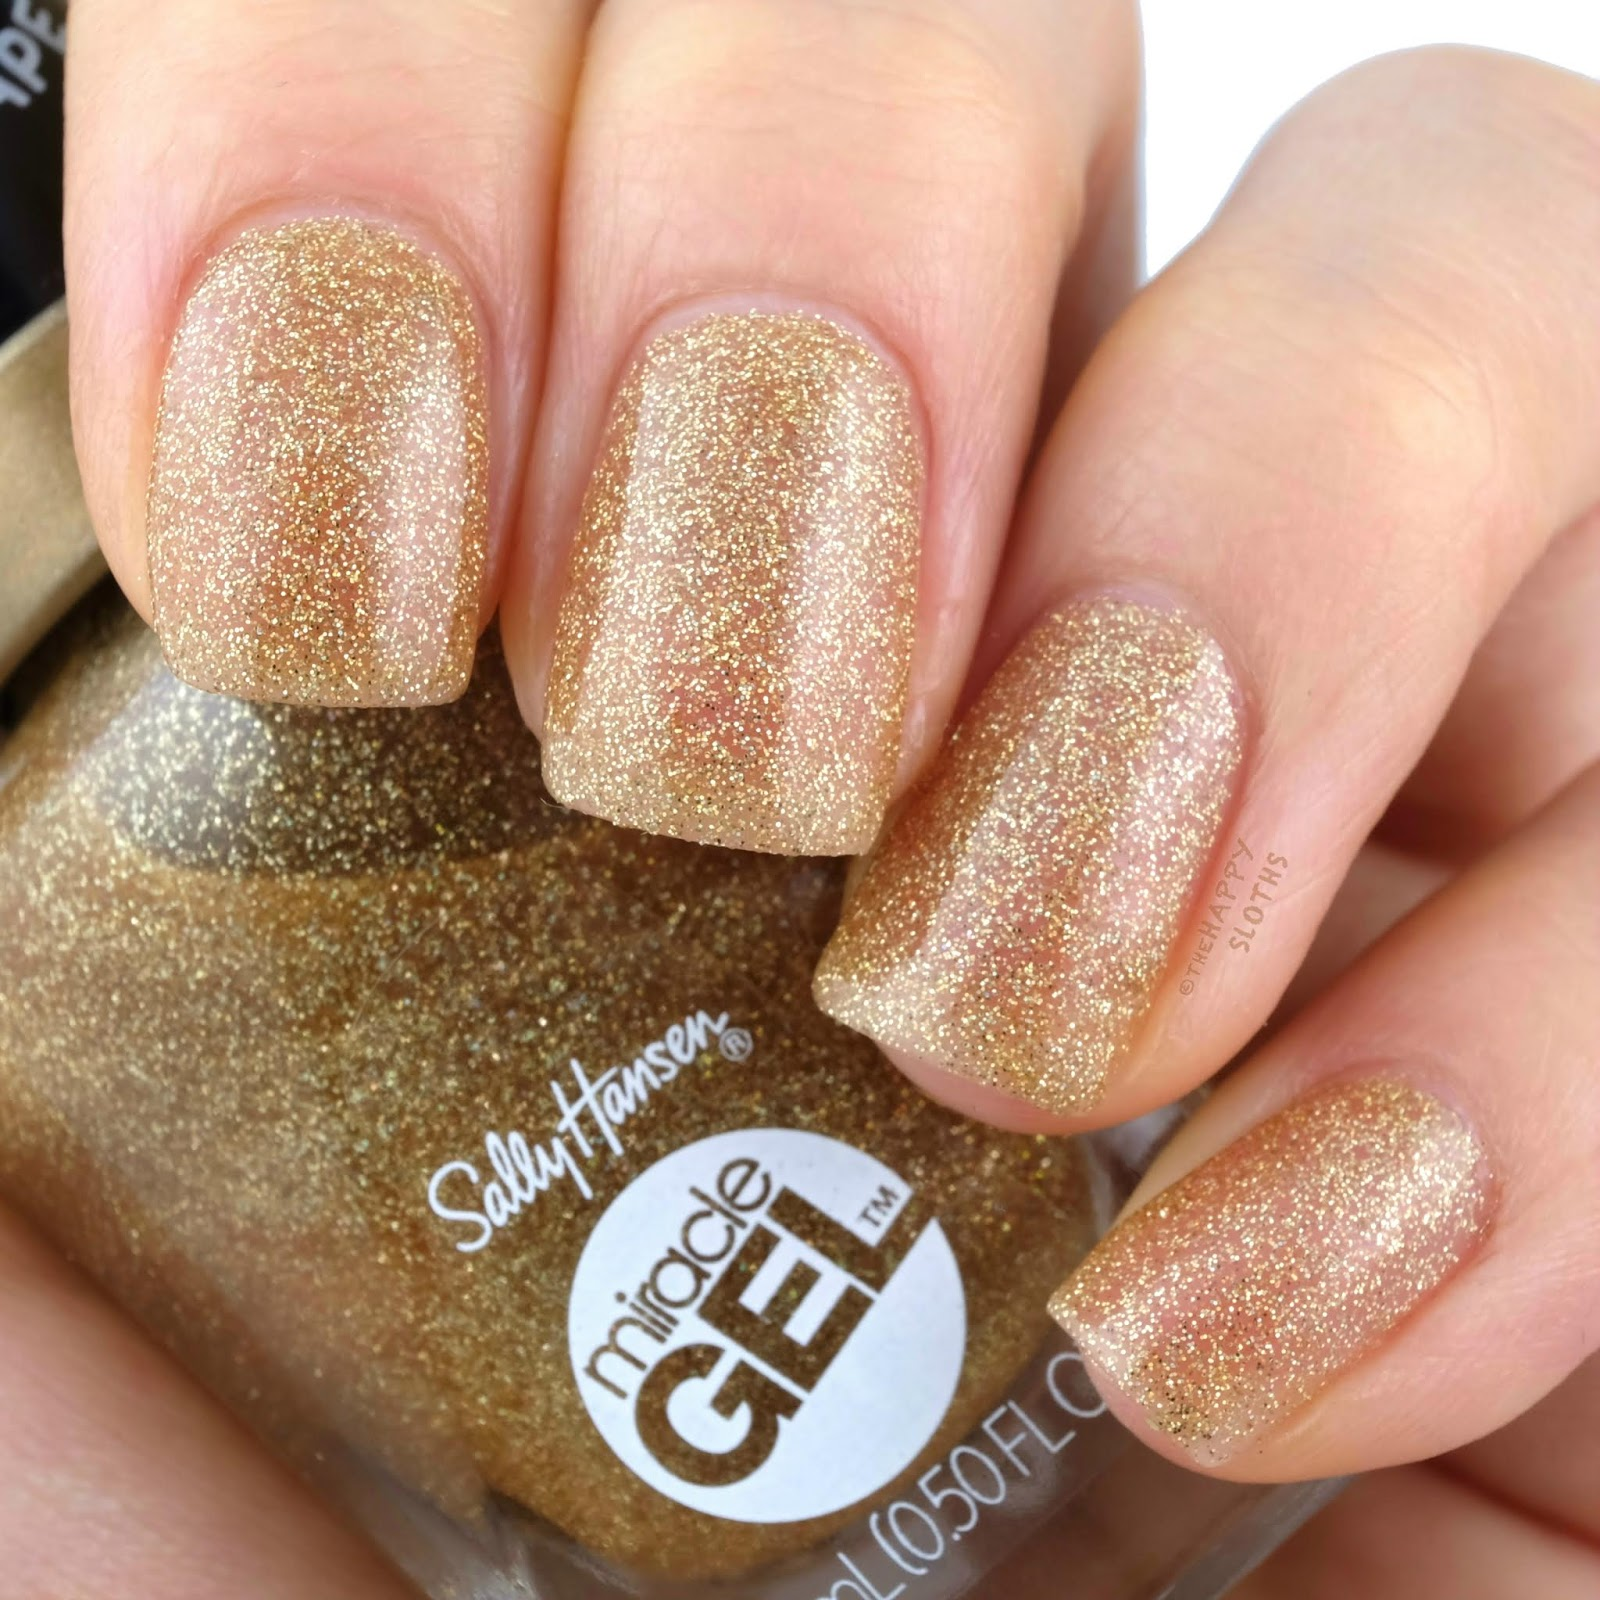 Sally Hansen   Holiday 2019 Oh My Gold! Miracle Gel Collection   155 Five Golden Blings: Review and Swatches